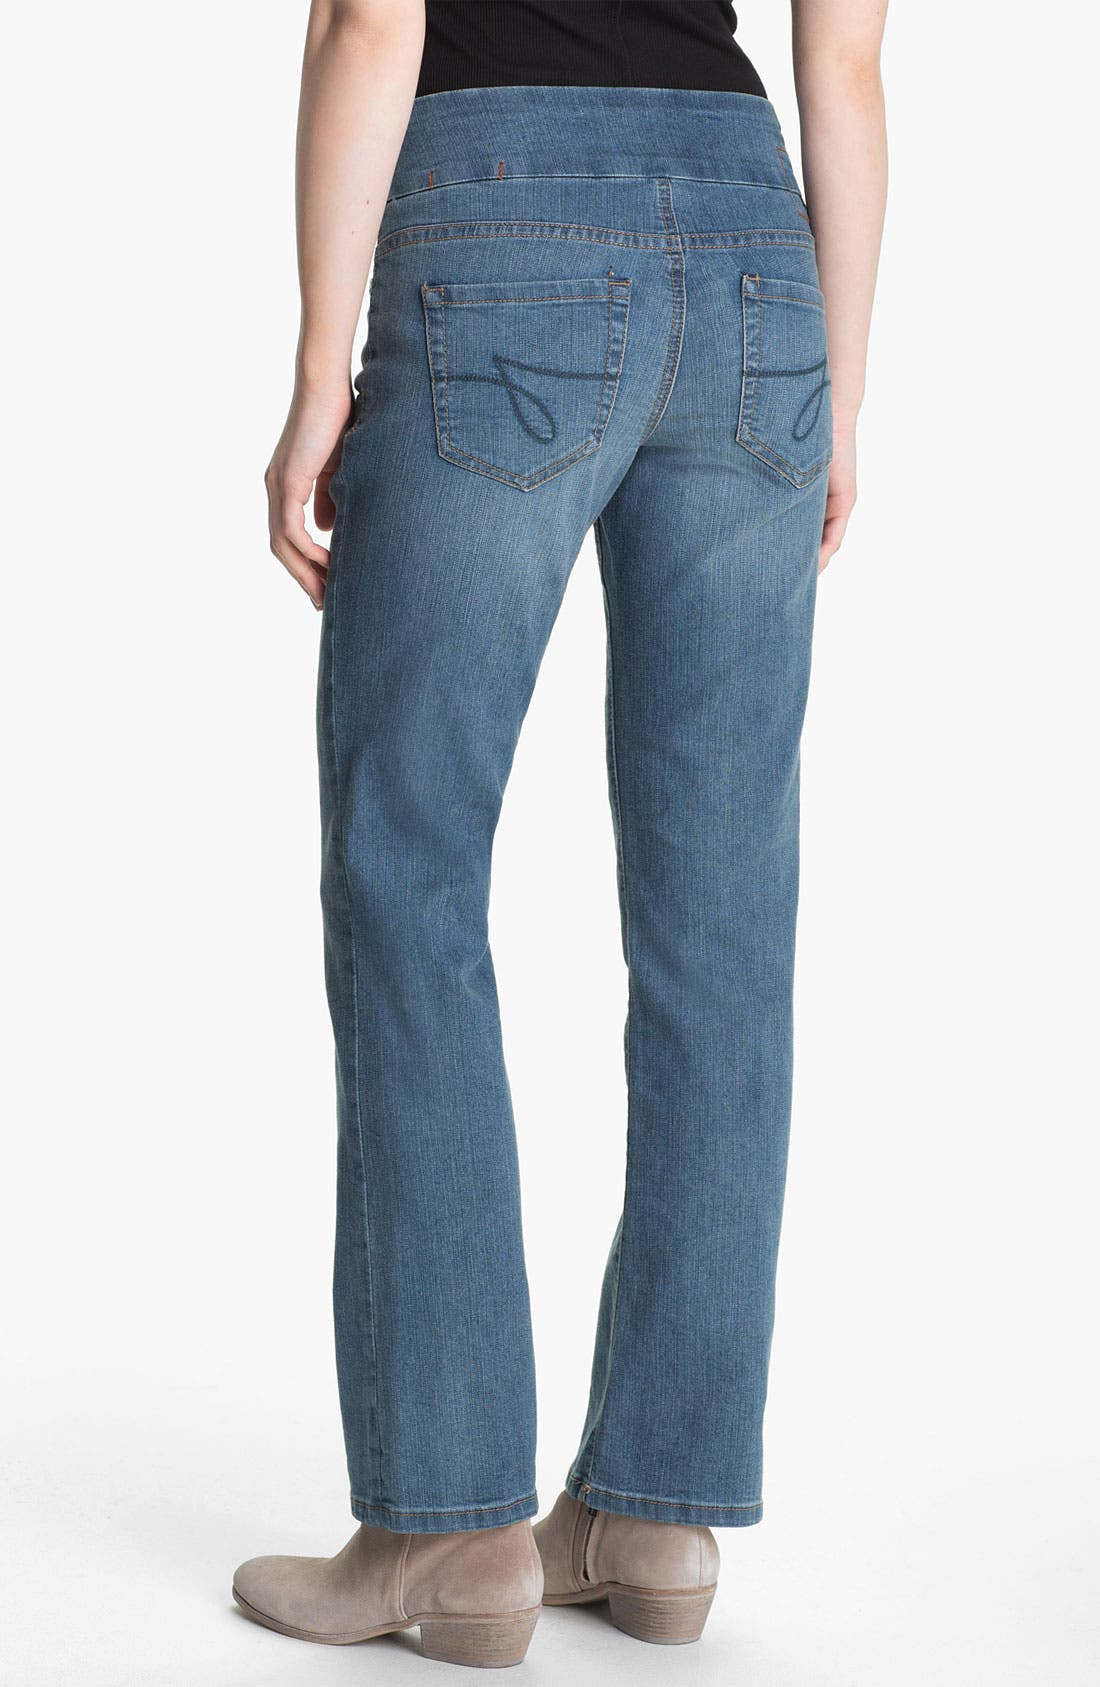 Alternate Image 3  - Jag Jeans 'Paley' Pull-On Jeans (Petite)